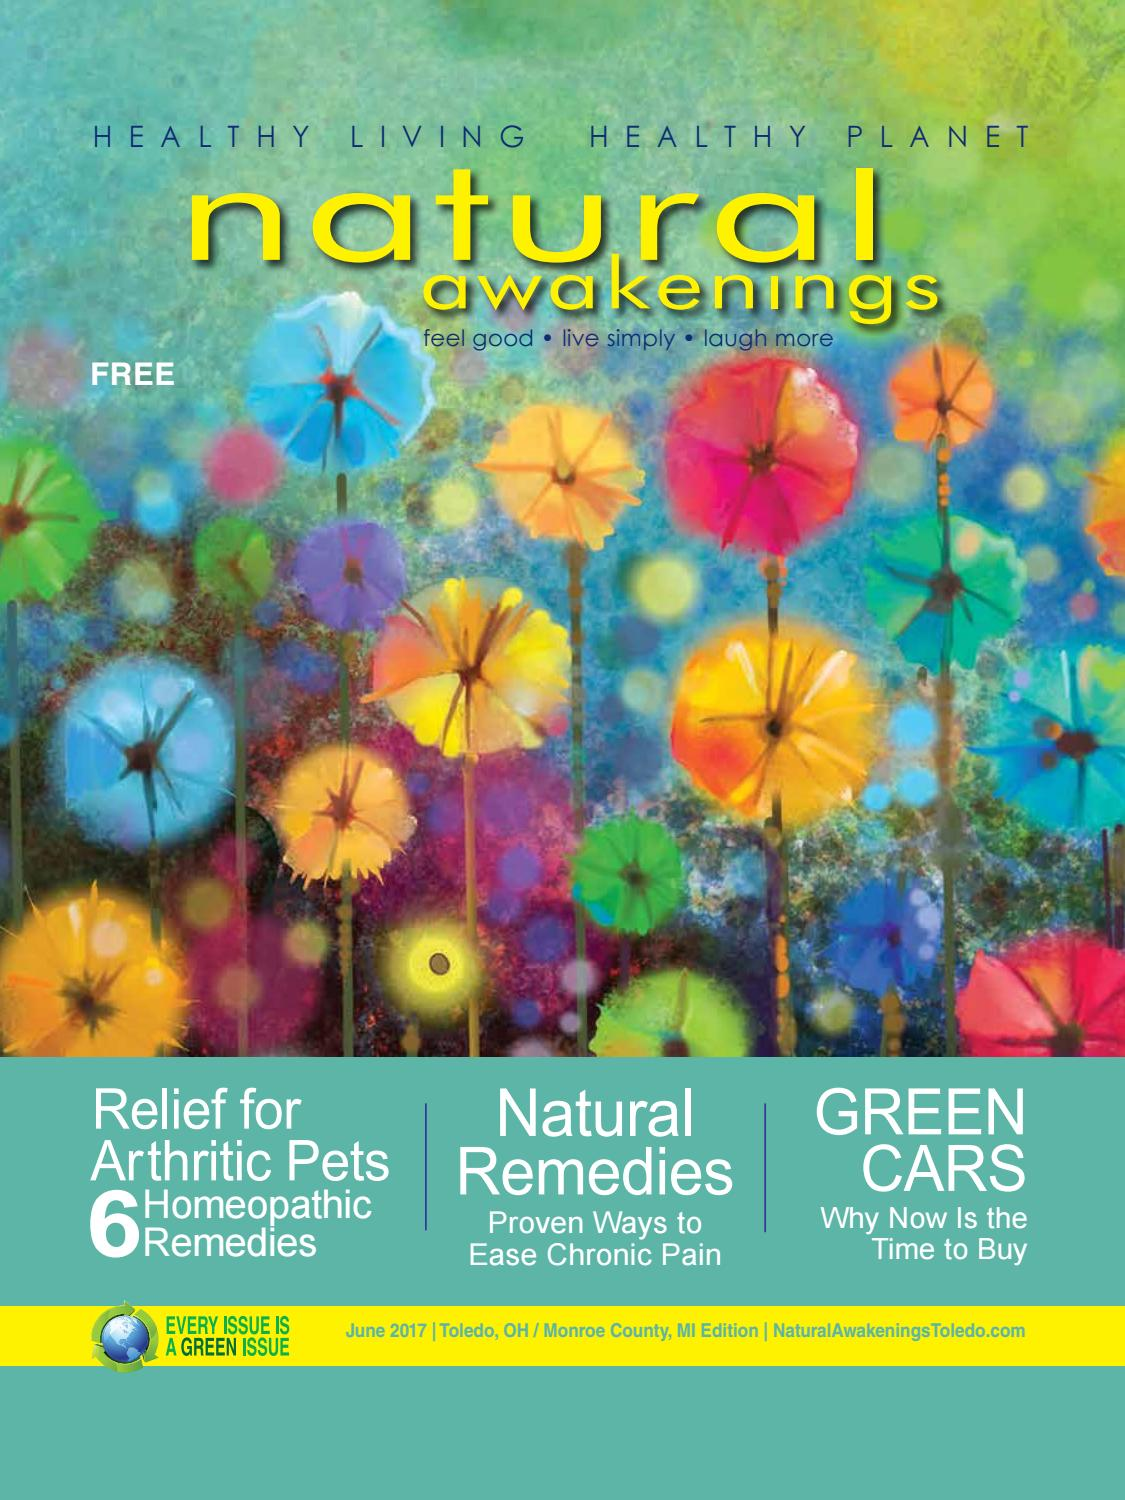 natural awakenings toledo june by natural awakenings toledo issuu